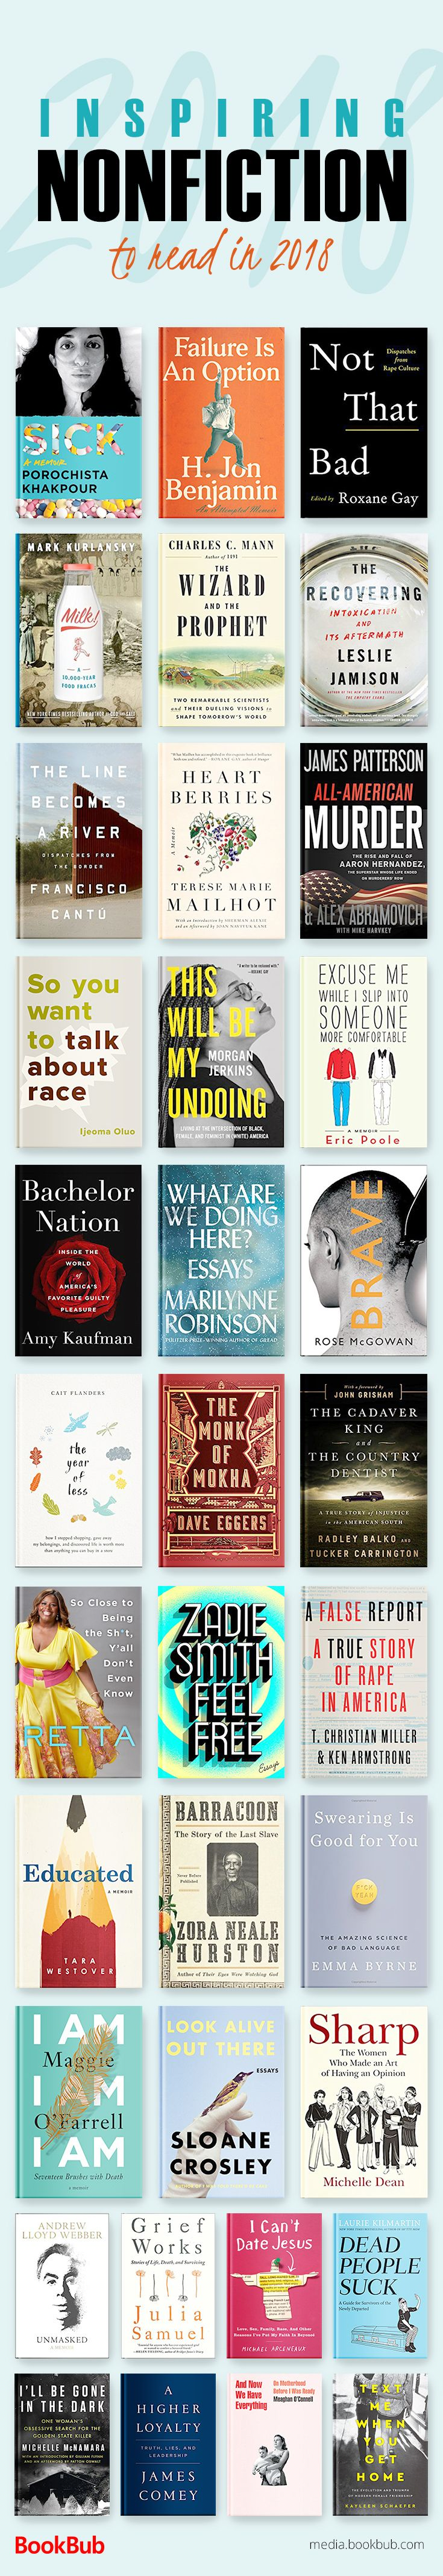 35 HighlyAnticipated Nonfiction Books Coming in 2018 is part of Nonfiction books, Inspirational books, Books to read, Books to read 2018, Book club books, Books 2018 - These new books feature subjects spanning from coping with grief to the virtues of swearing to living with chronic illness